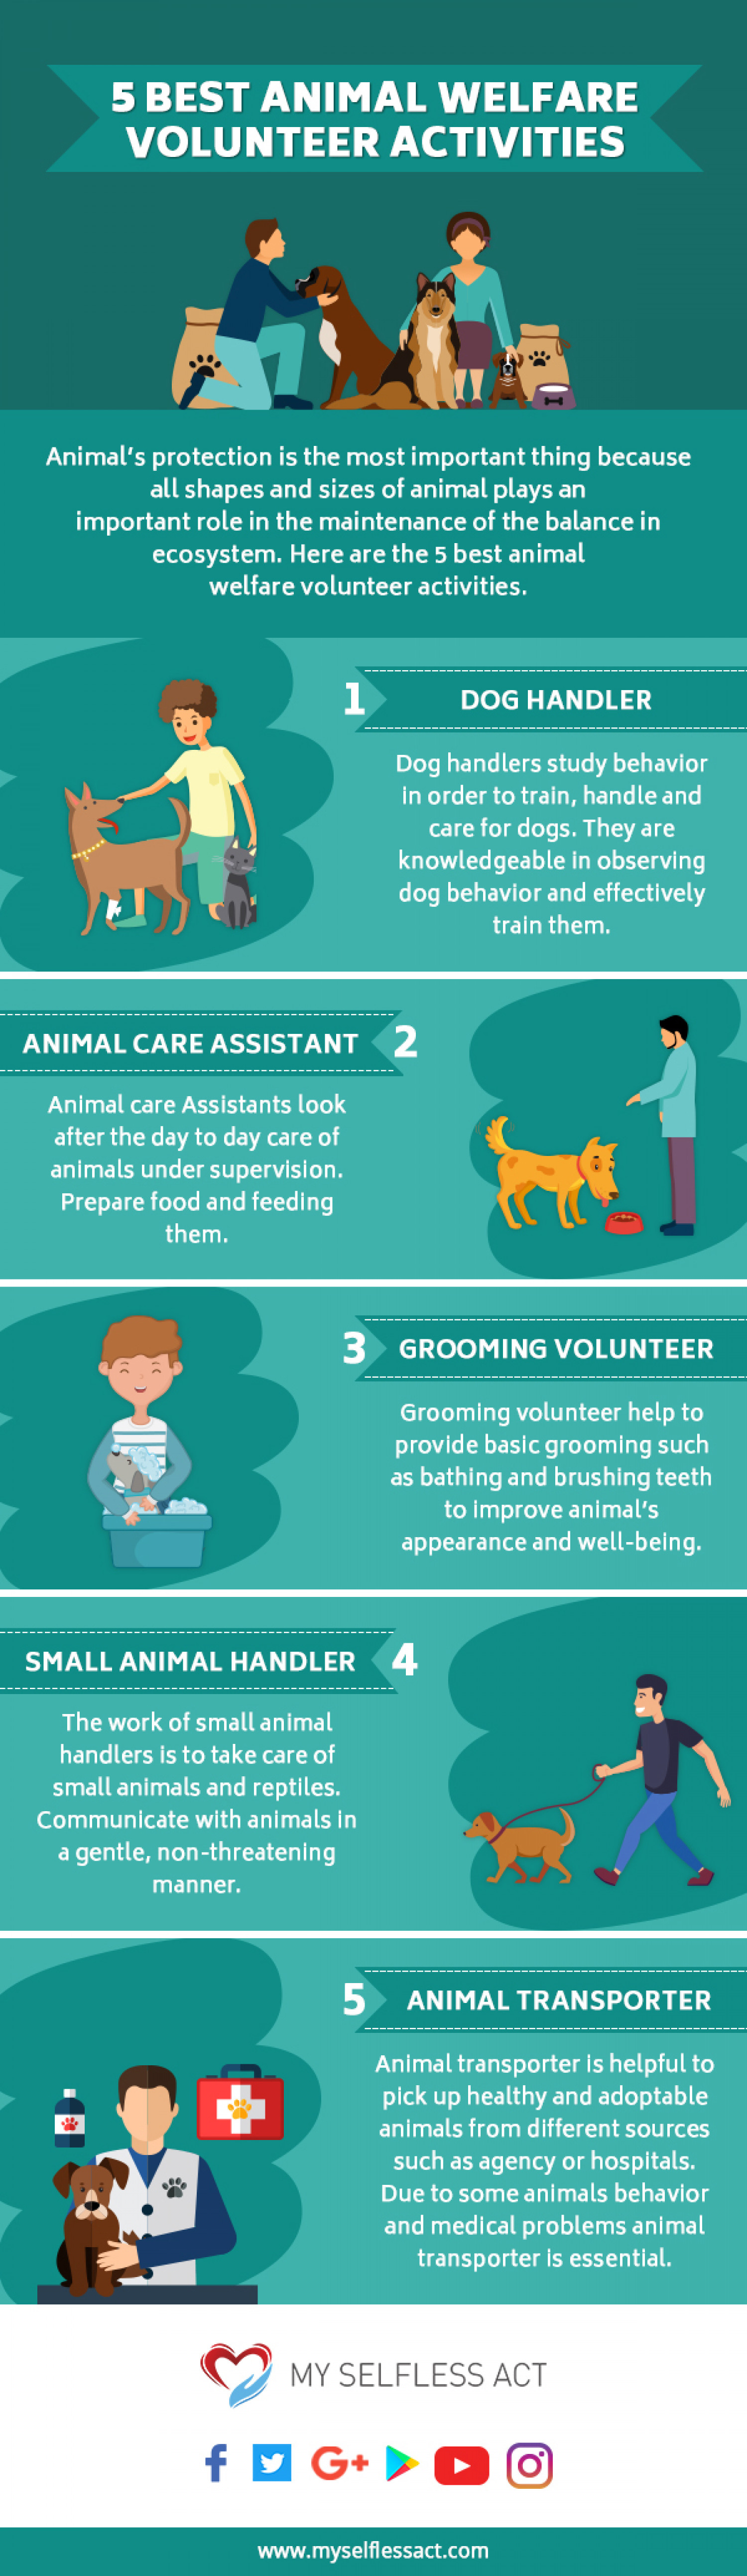 5 BEST ANIMAL WELFARE VOLUNTEER ACTIVITIES Infographic